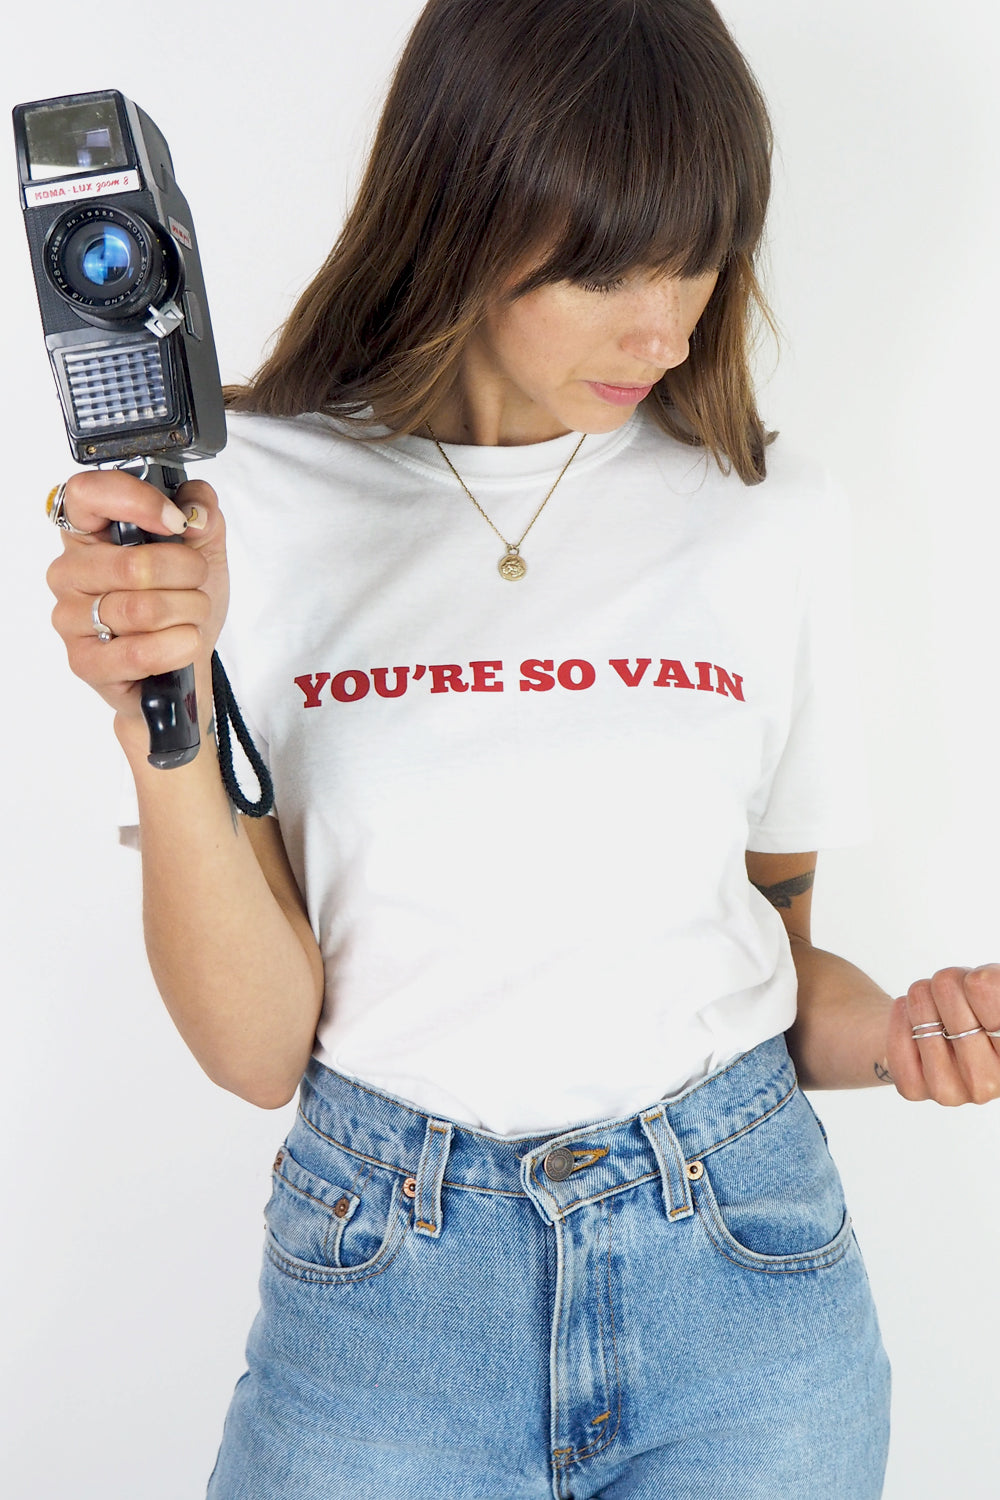 You're so Vain retro slogan t-shirt